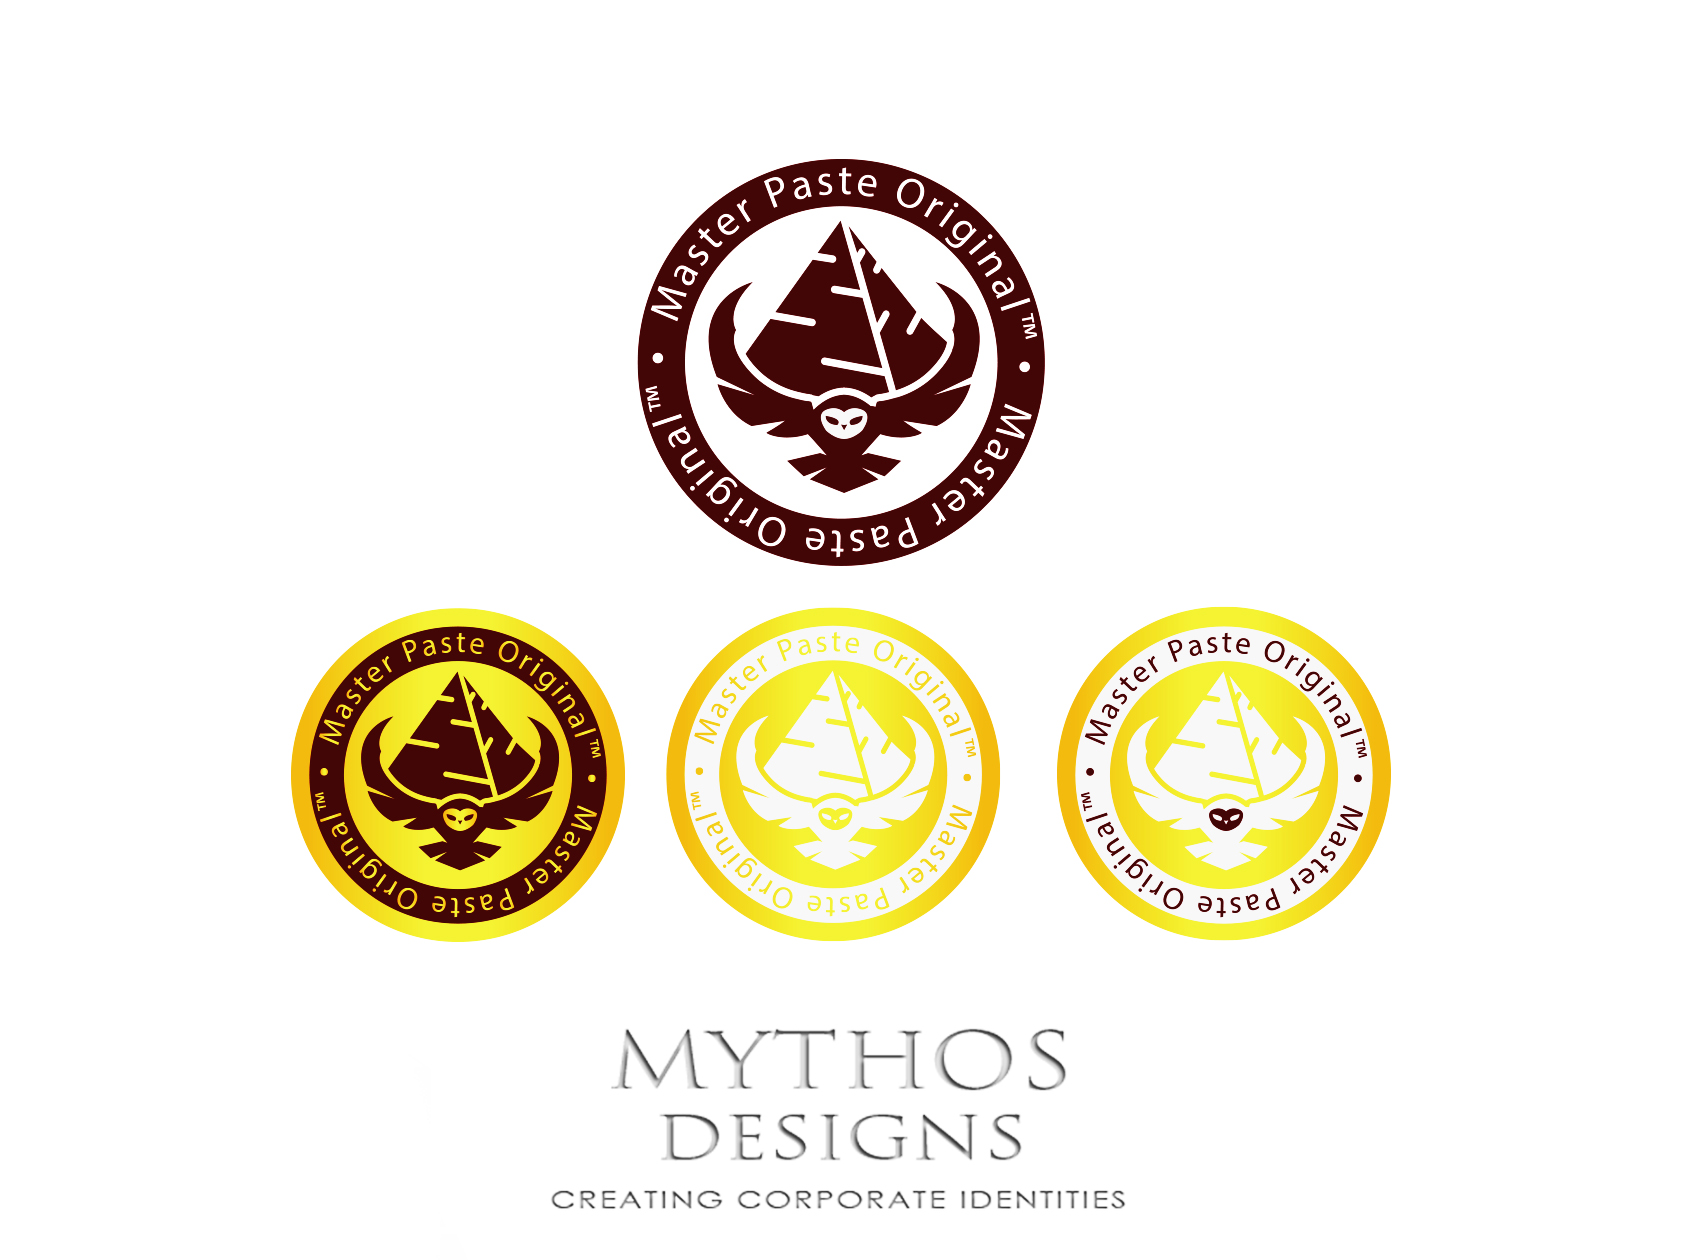 Logo Design by Mythos Designs - Entry No. 69 in the Logo Design Contest Unique Logo Design Wanted for Master Paste Original™.